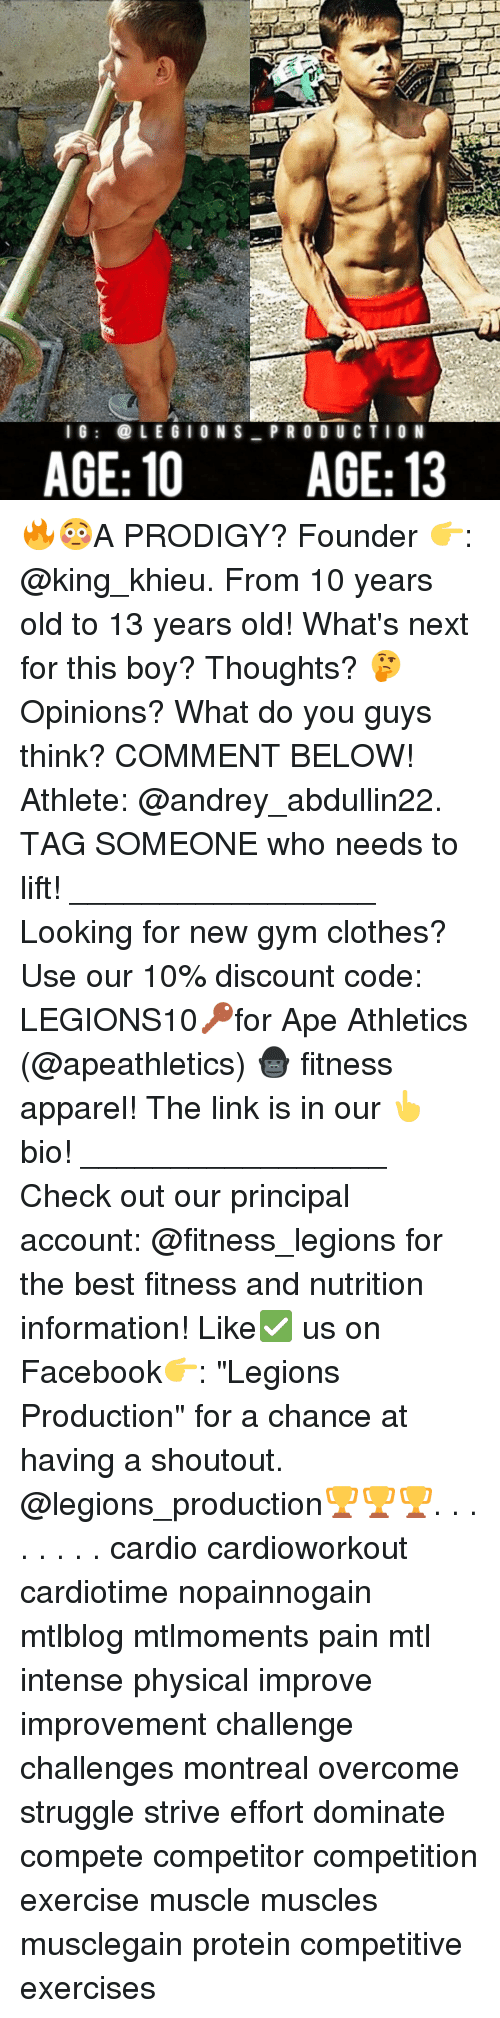 "overcomer: l G  LEGION S  PRO DU CTION  AGE: 10 AGE: 13 🔥😳A PRODIGY? Founder 👉: @king_khieu. From 10 years old to 13 years old! What's next for this boy? Thoughts? 🤔Opinions? What do you guys think? COMMENT BELOW! Athlete: @andrey_abdullin22. TAG SOMEONE who needs to lift! _________________ Looking for new gym clothes? Use our 10% discount code: LEGIONS10🔑for Ape Athletics (@apeathletics) 🦍 fitness apparel! The link is in our 👆 bio! _________________ Check out our principal account: @fitness_legions for the best fitness and nutrition information! Like✅ us on Facebook👉: ""Legions Production"" for a chance at having a shoutout. @legions_production🏆🏆🏆. . . . . . . . cardio cardioworkout cardiotime nopainnogain mtlblog mtlmoments pain mtl intense physical improve improvement challenge challenges montreal overcome struggle strive effort dominate compete competitor competition exercise muscle muscles musclegain protein competitive exercises"